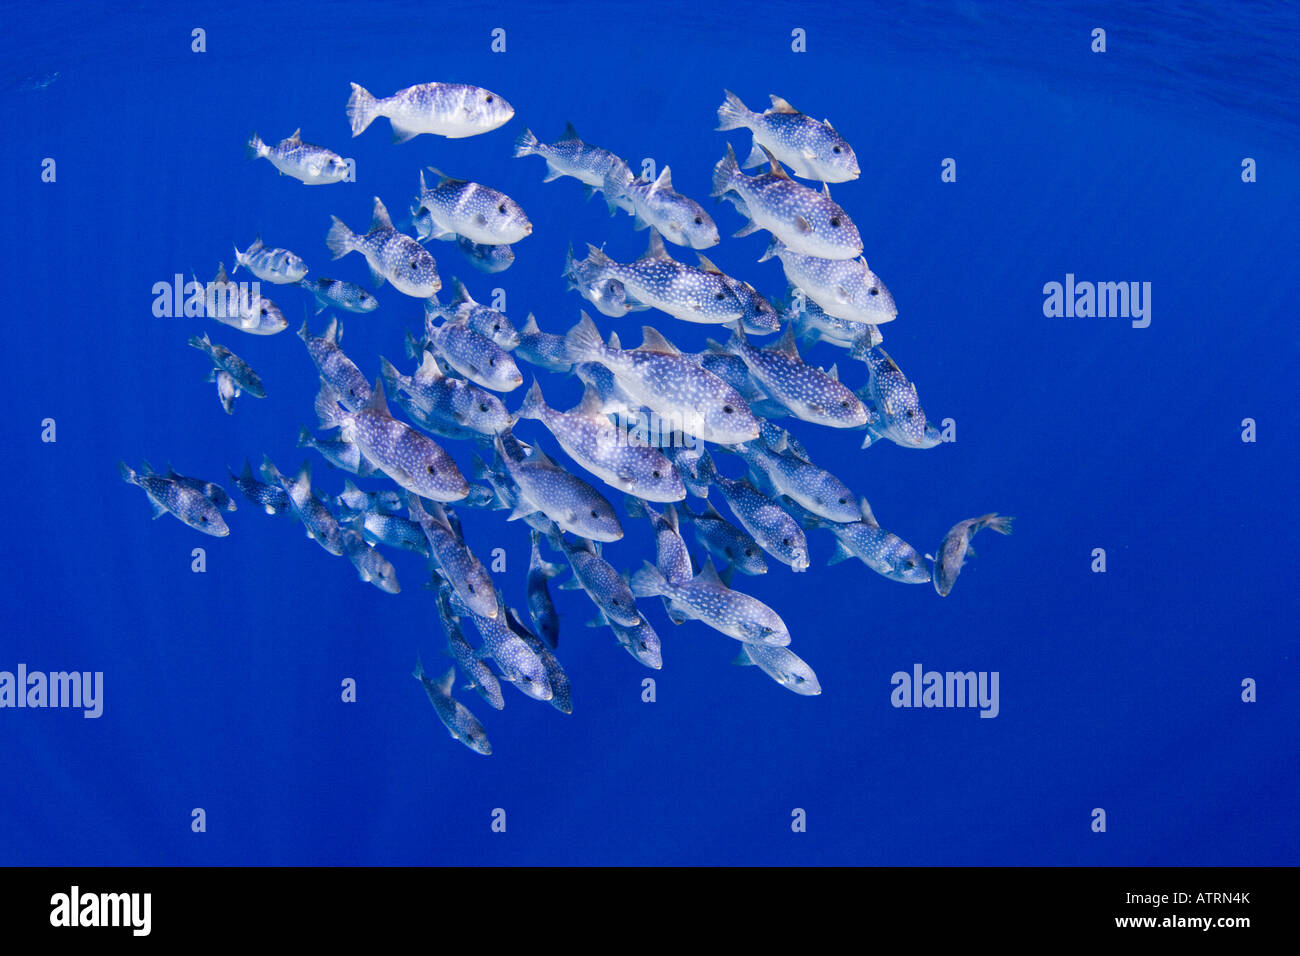 Spotted Oceanic Triggerfish, Canthidermis maculatus, reach a length of approximately 20 inches and up to 5 pounds. - Stock Image